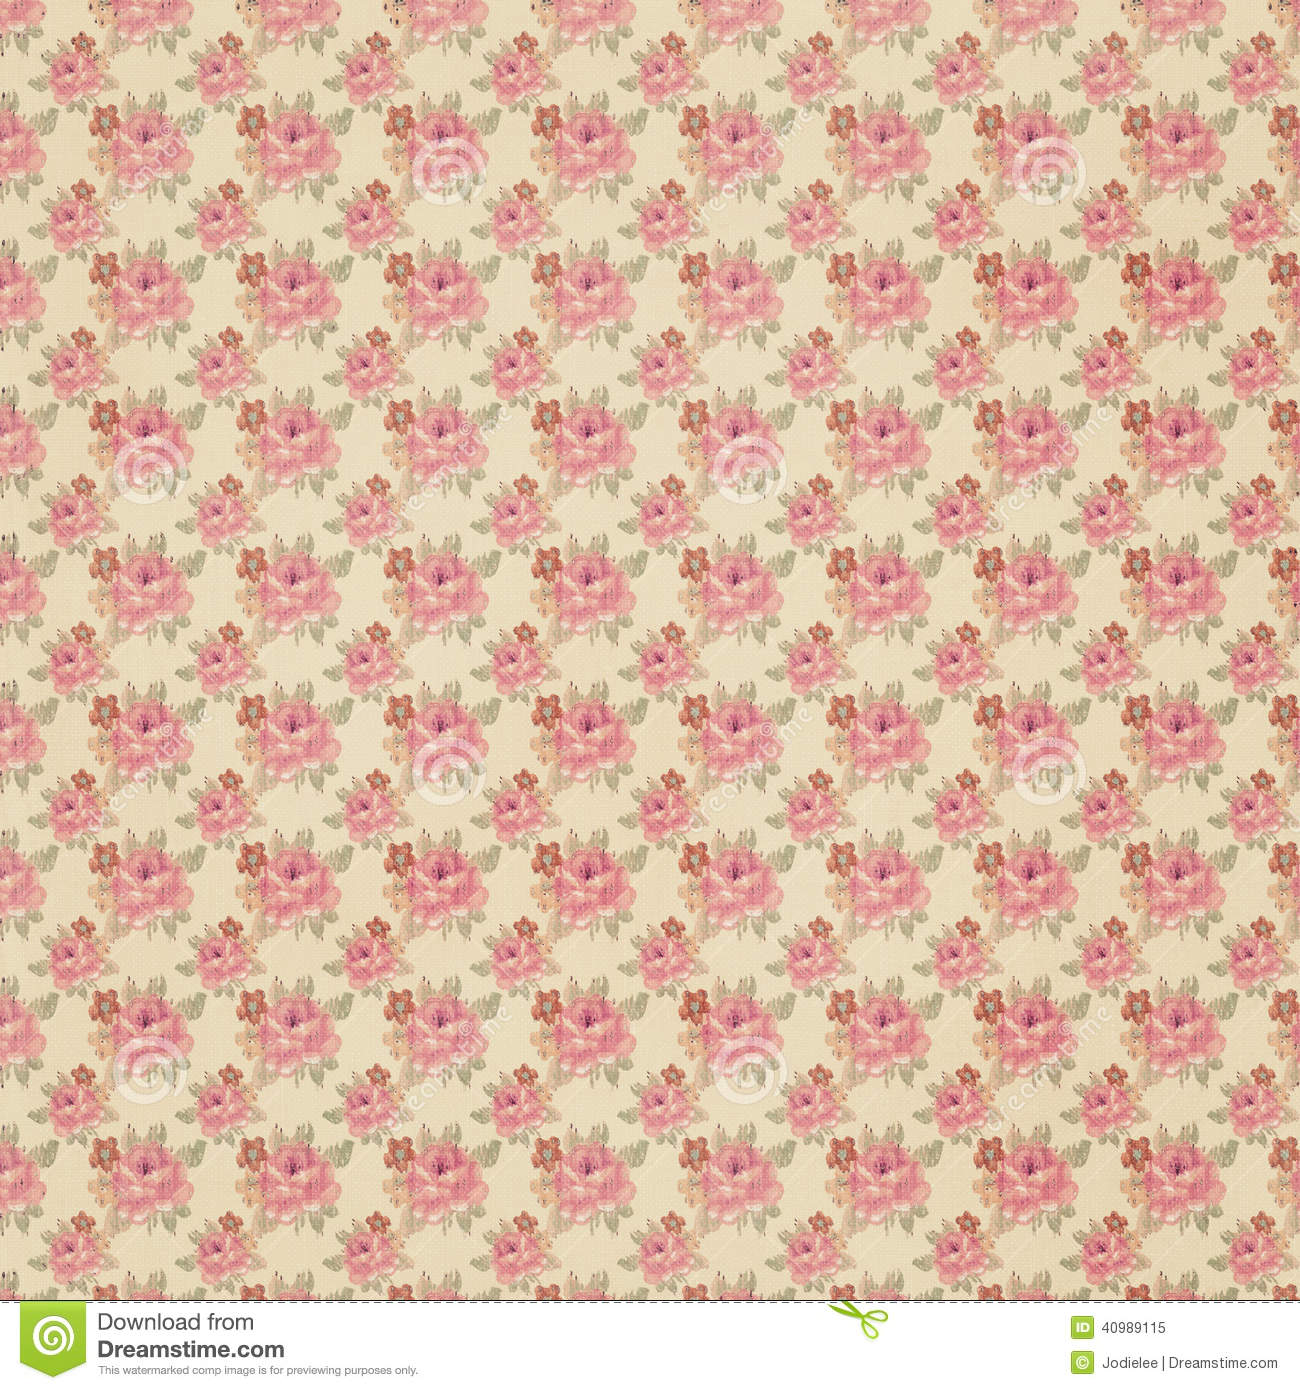 Antique Floral Wallpaper Stock Image Image Of Patterns 40989115